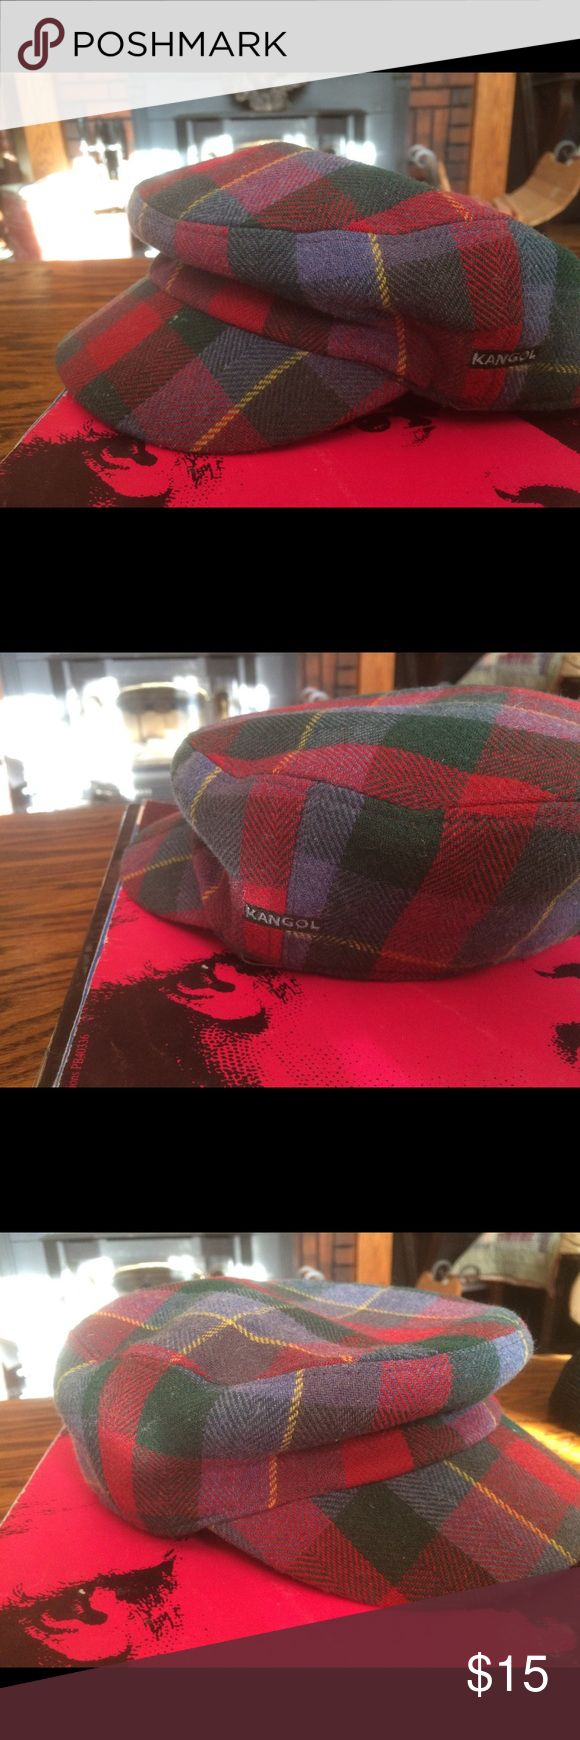 Men's large Kangol cap Plaid size large Kangol one stitch missing on brim. Offers always welcome. Kangol Accessories Hats